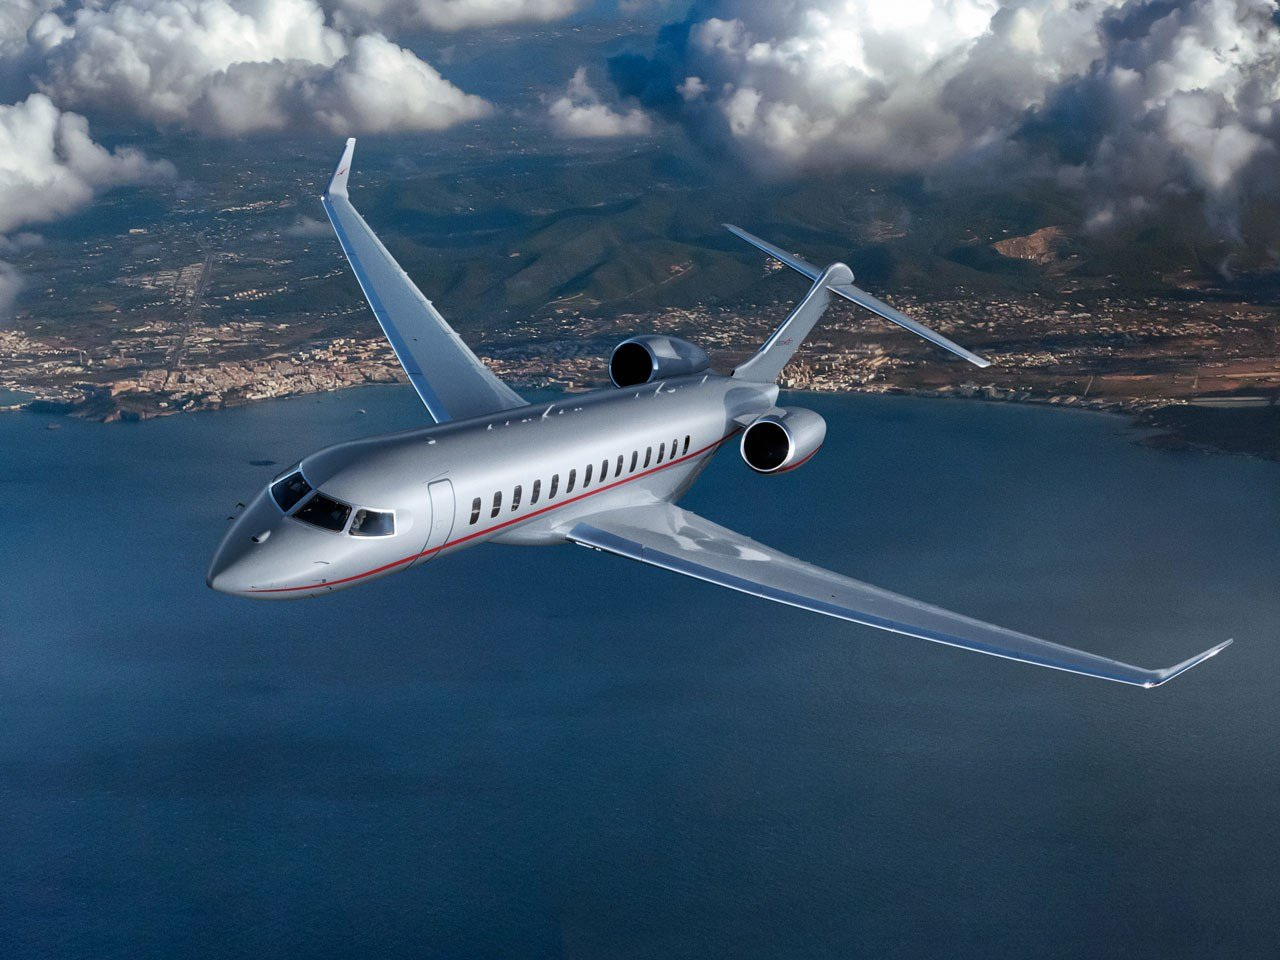 VistaJet offers empty legs in COVID-19 fight